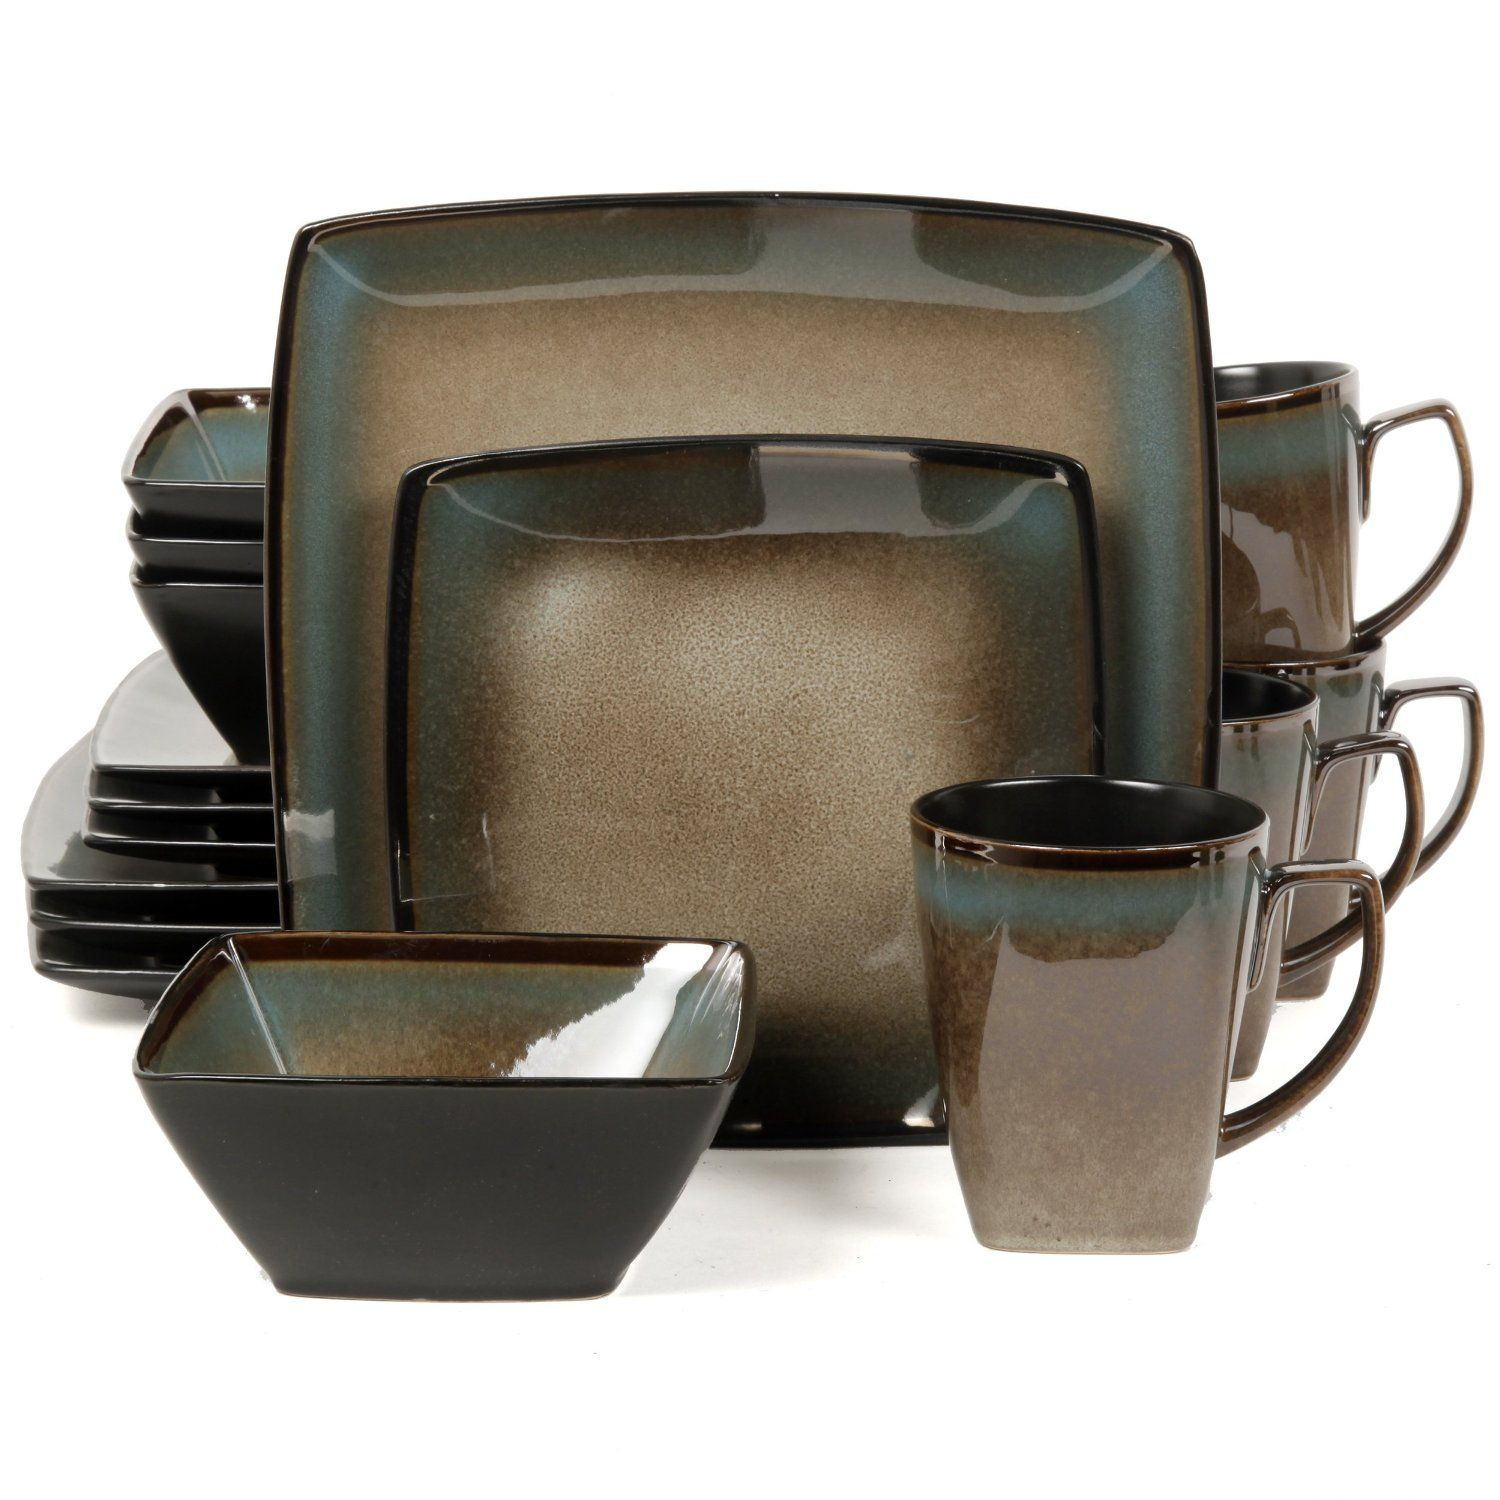 NEW 16 pc dinnerware set jade green black square dishes creamic dishes service | Ceramic plates Dinnerware and Pottery  sc 1 st  Pinterest & NEW 16 pc dinnerware set jade green black square dishes creamic ...